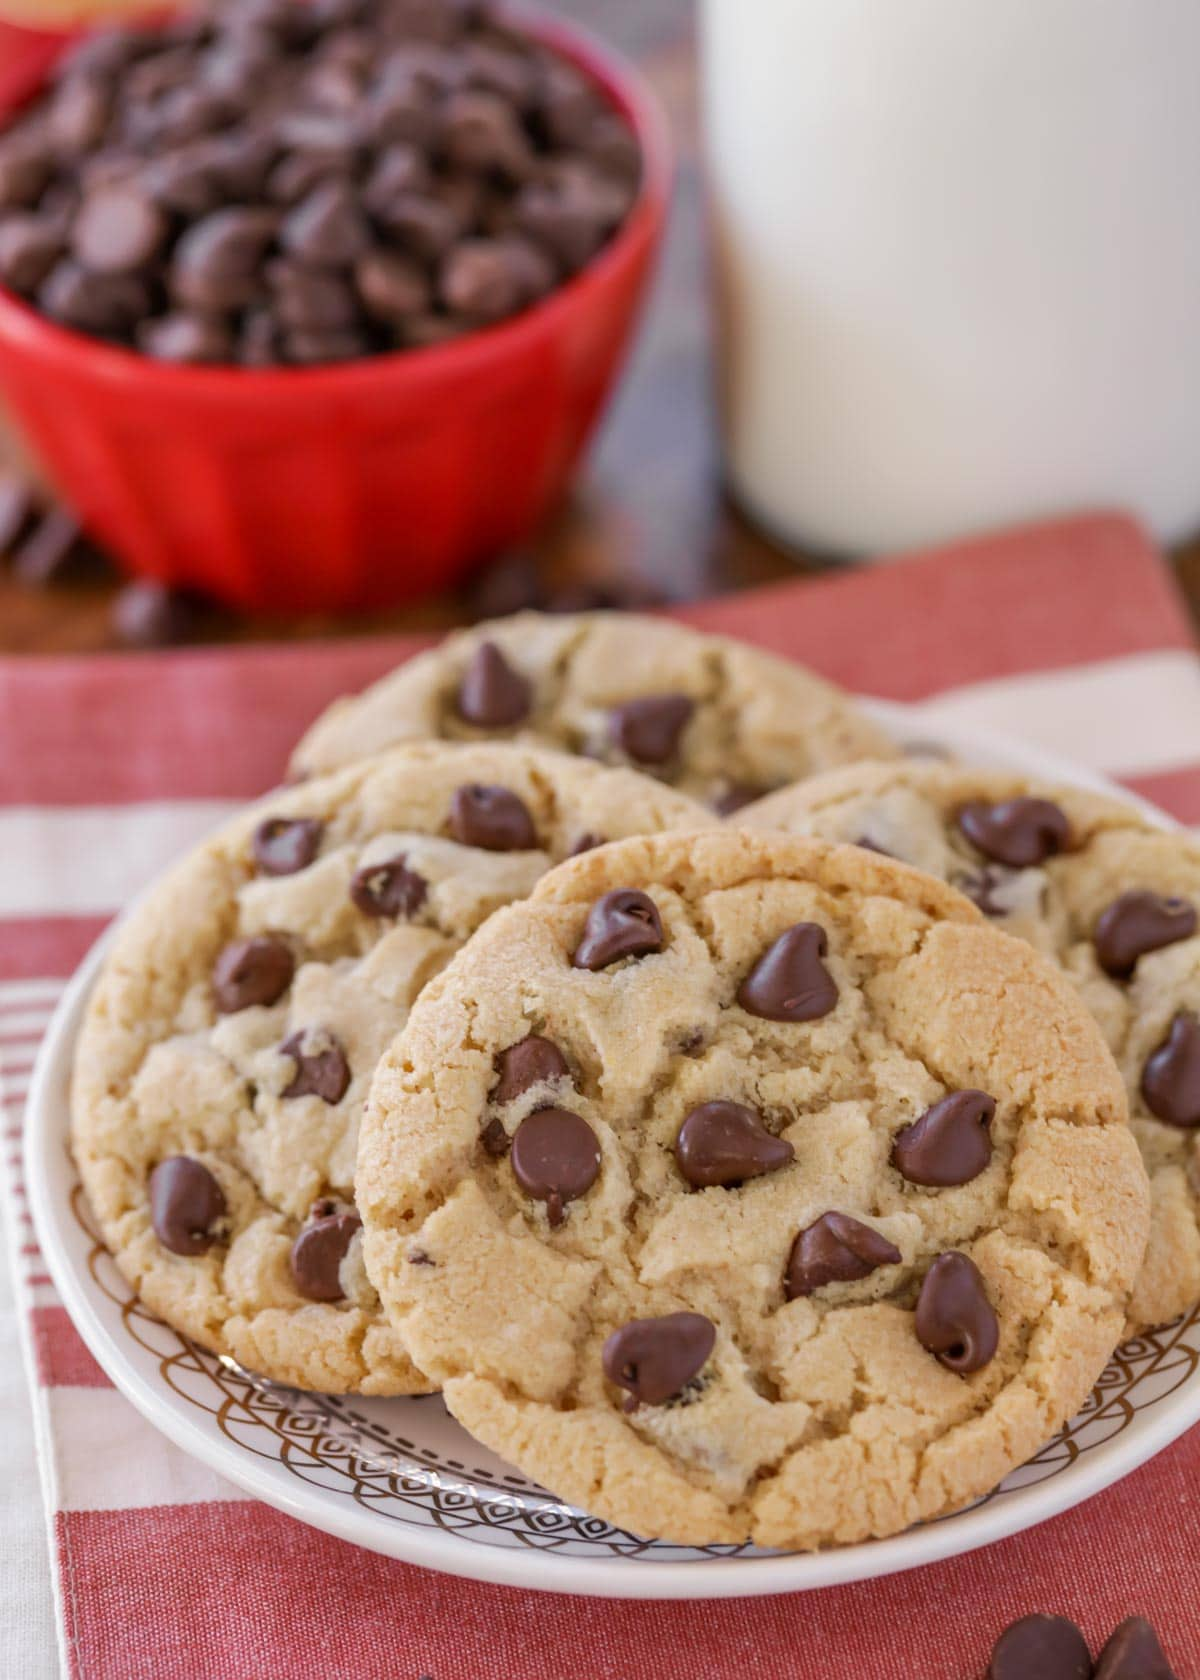 Nestle Toll House chocolate chip cookies staked on a white decorative plate